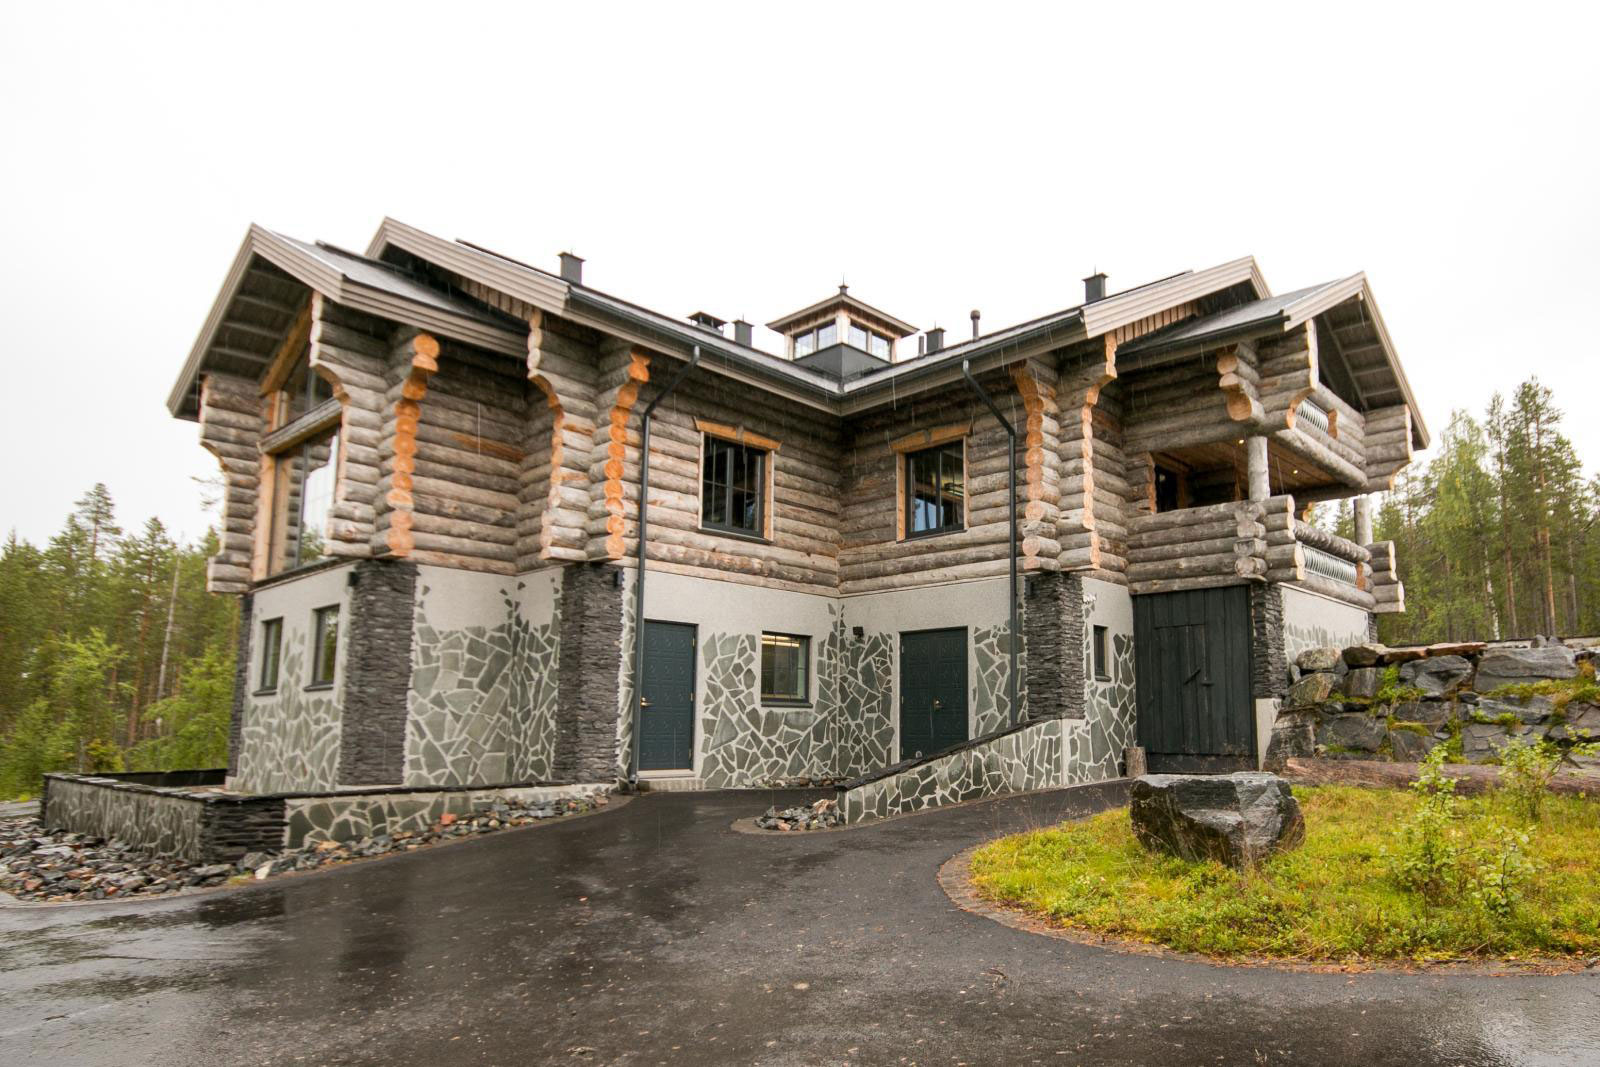 An Exclusive Villa Goes Up for Sale in Lapland, Finland